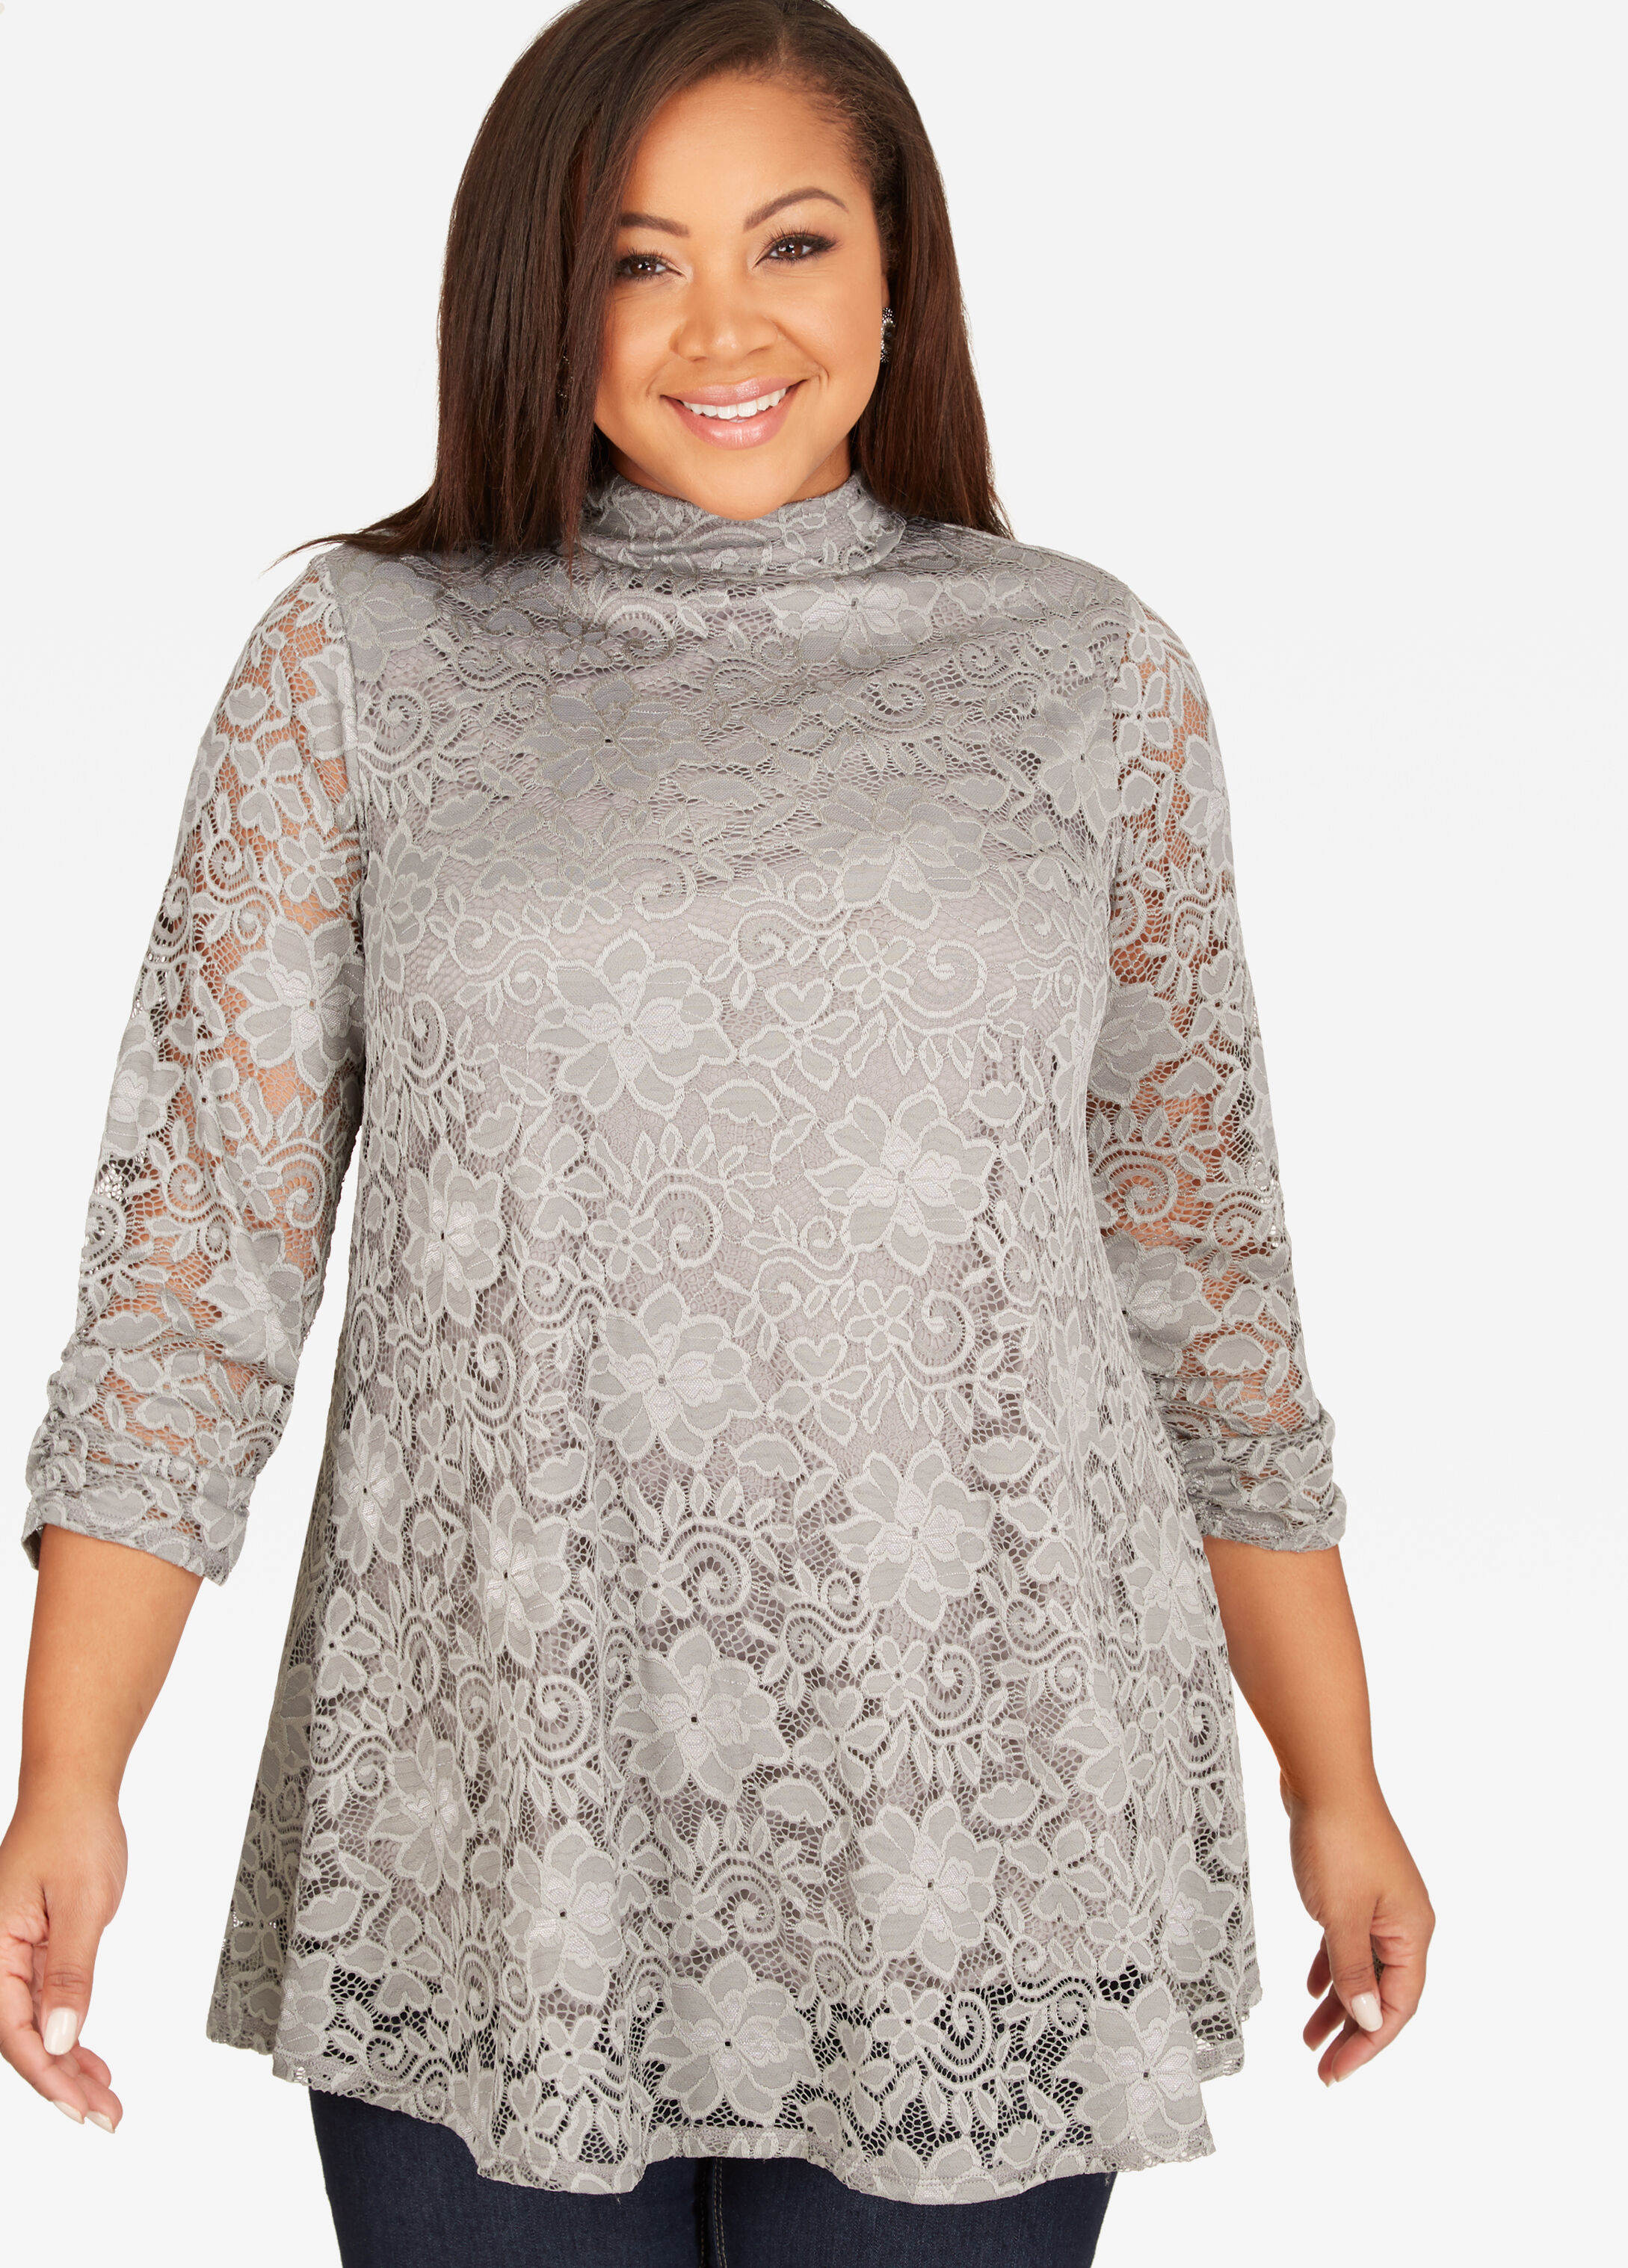 Lace Dress Top Silver Filigree - Tops